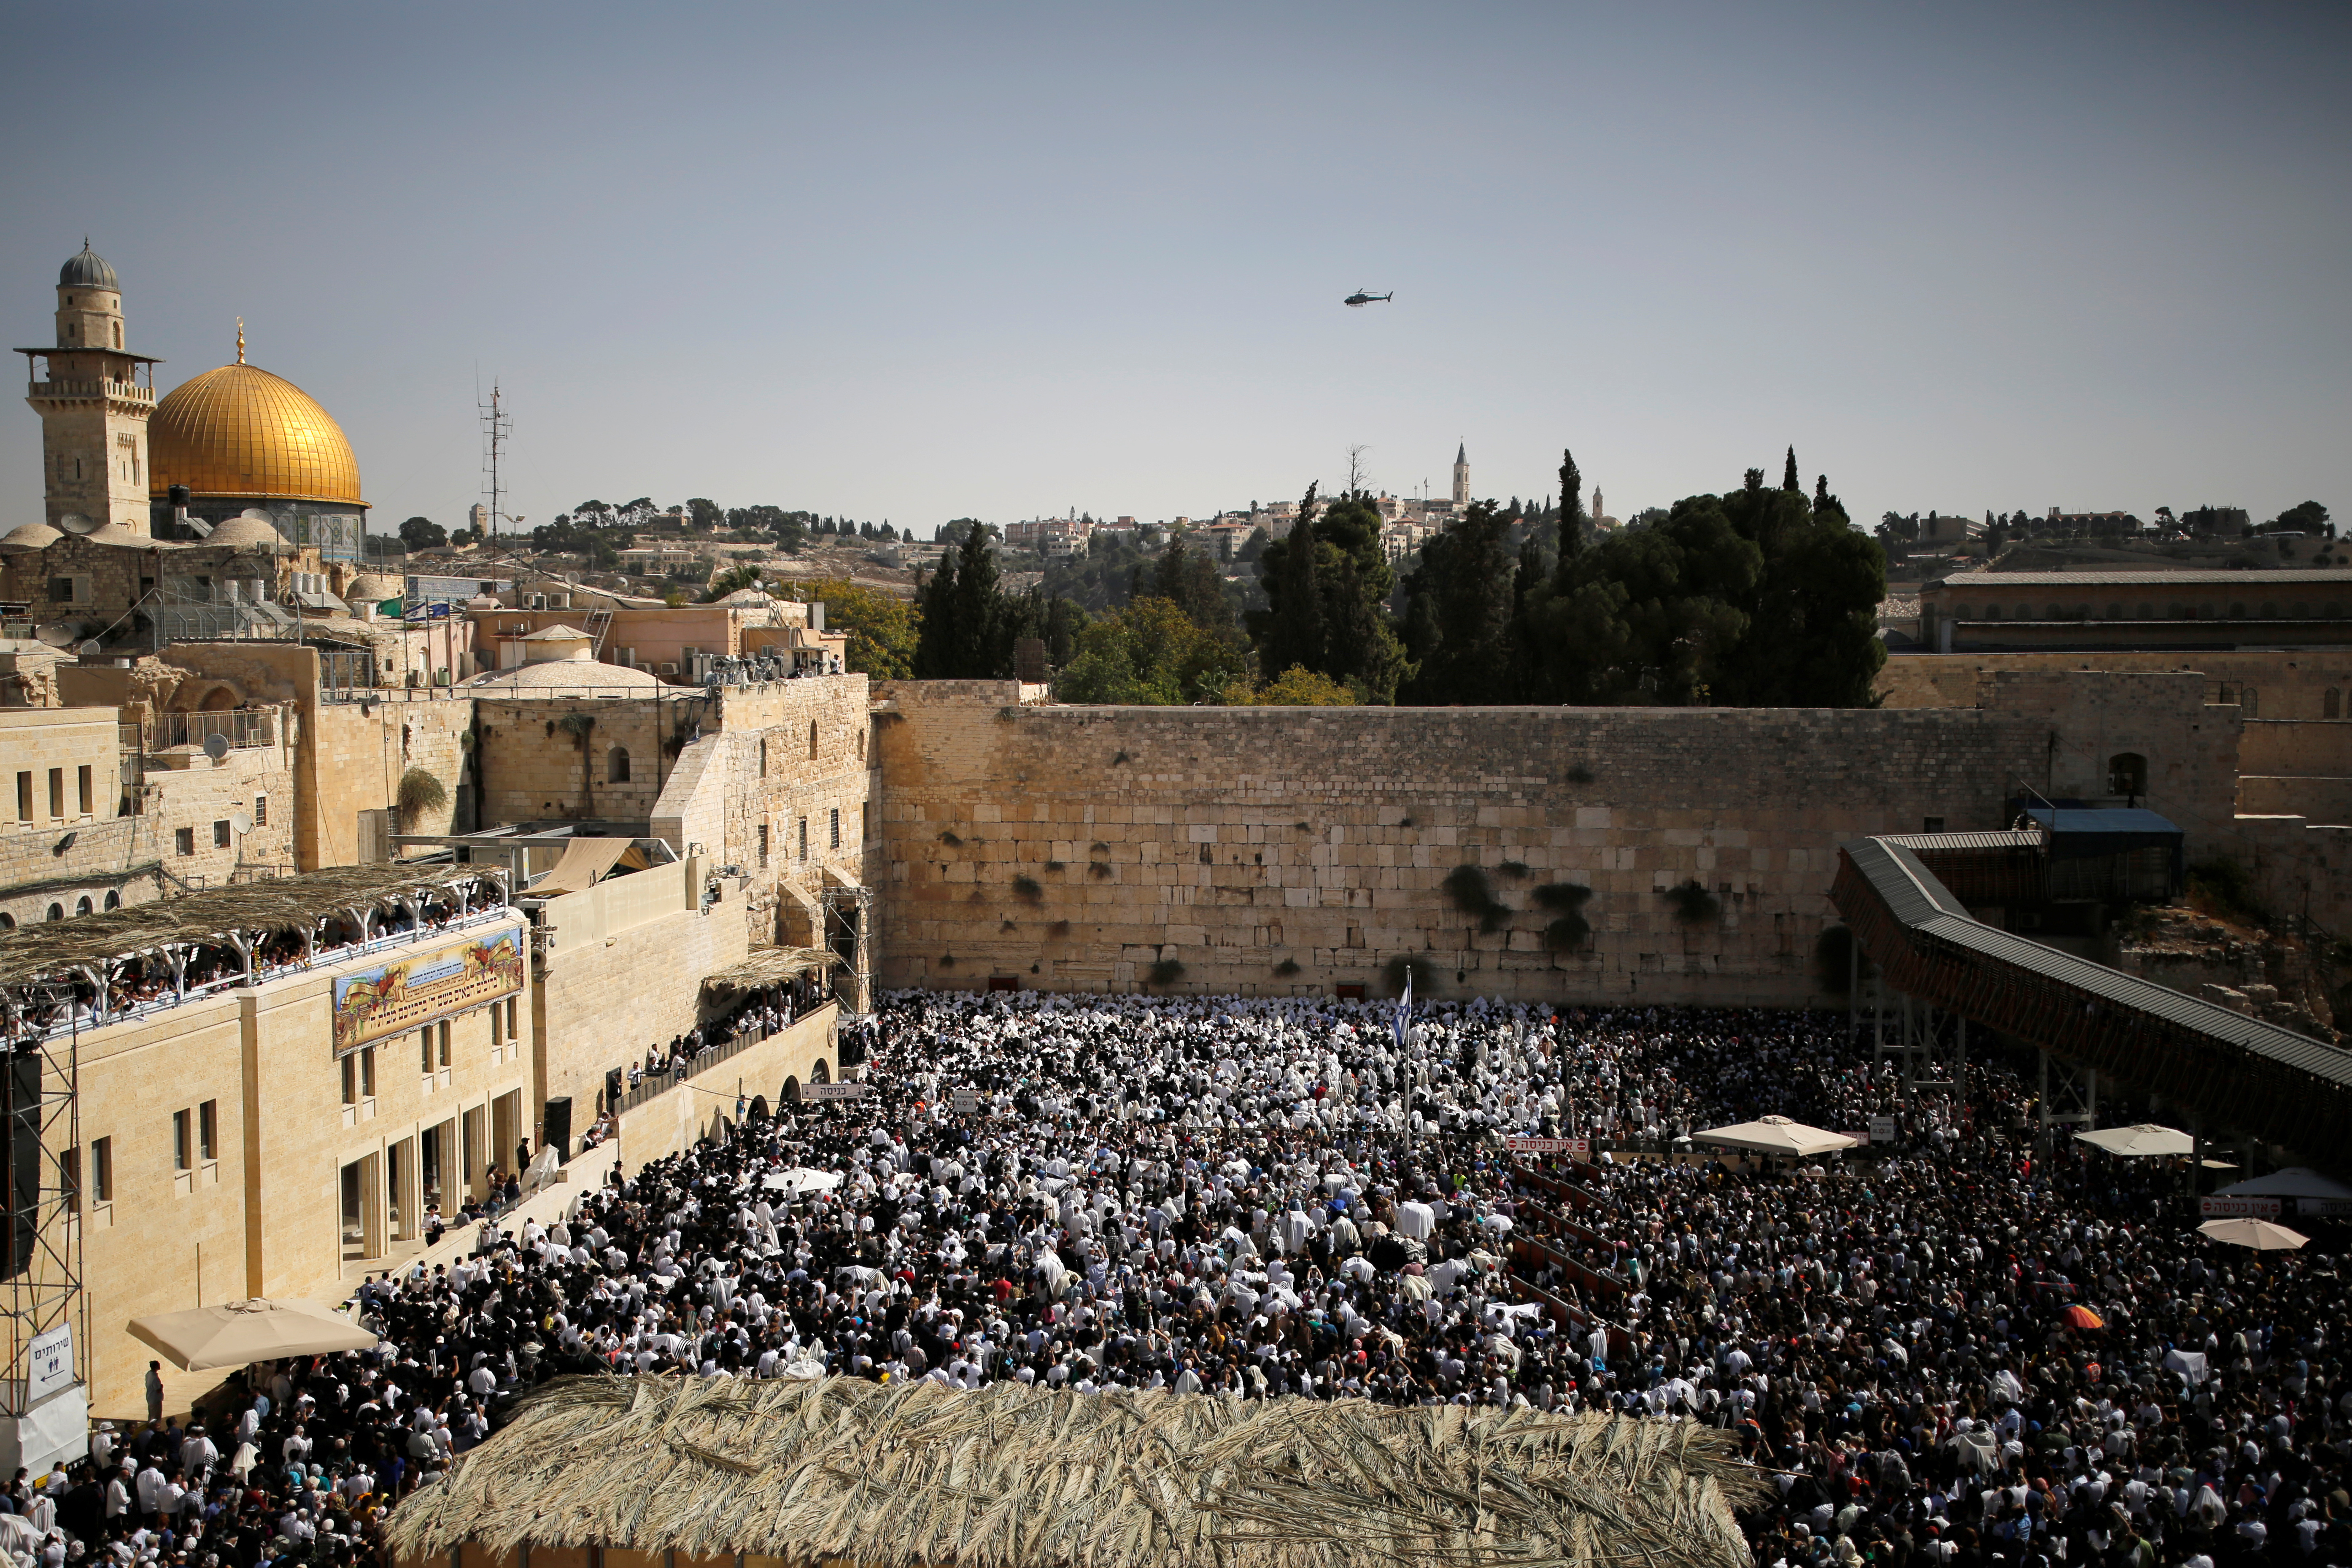 Israel closes off Ibrahimi Mosque to Muslims and Palestinians